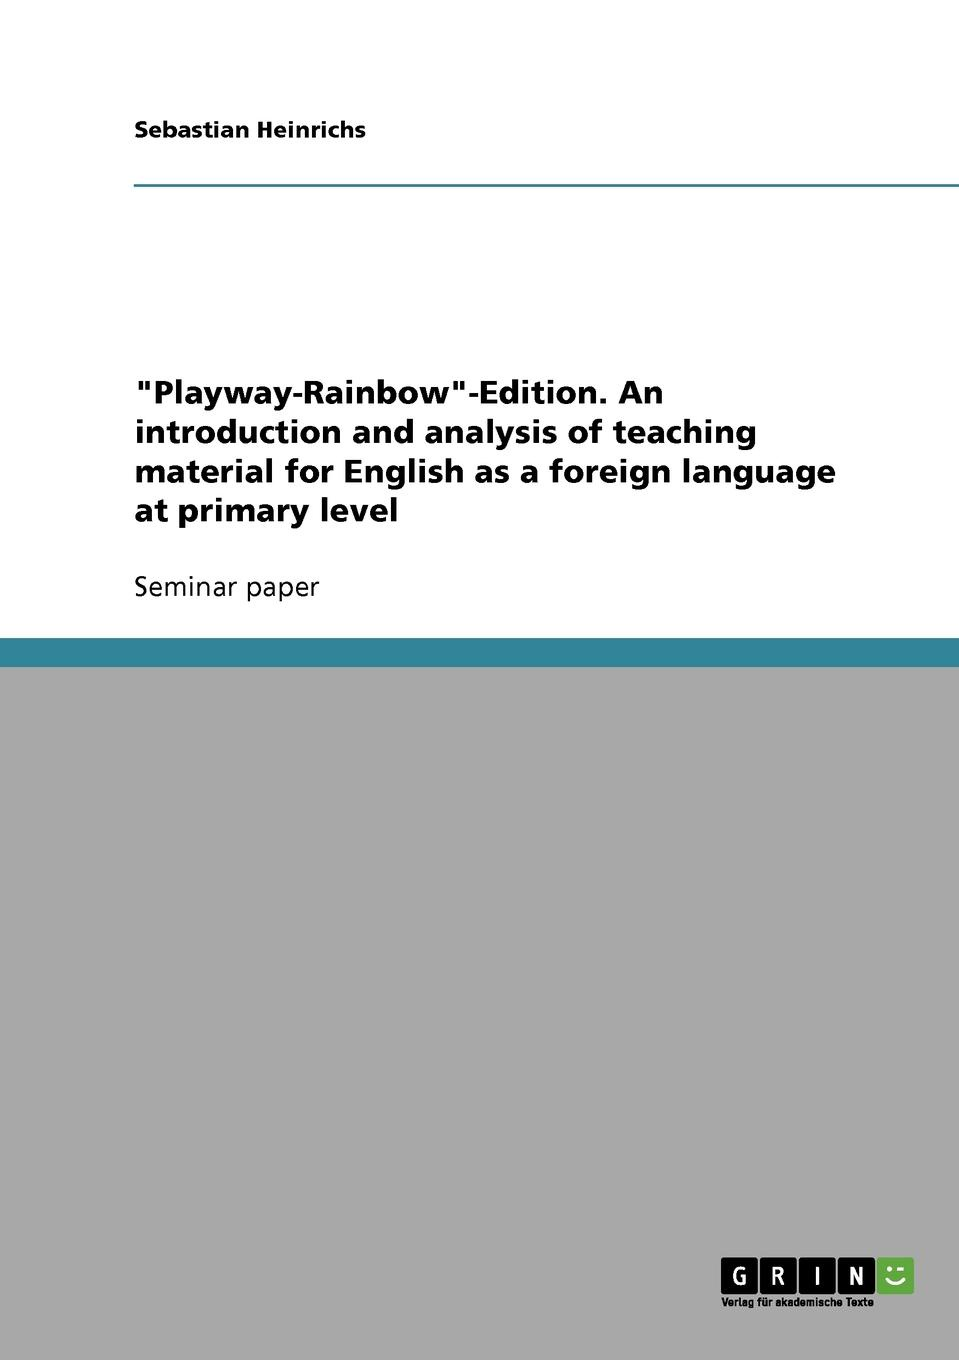 Sebastian Heinrichs Playway-Rainbow-Edition. An introduction and analysis of teaching material for English as a foreign language at primary level